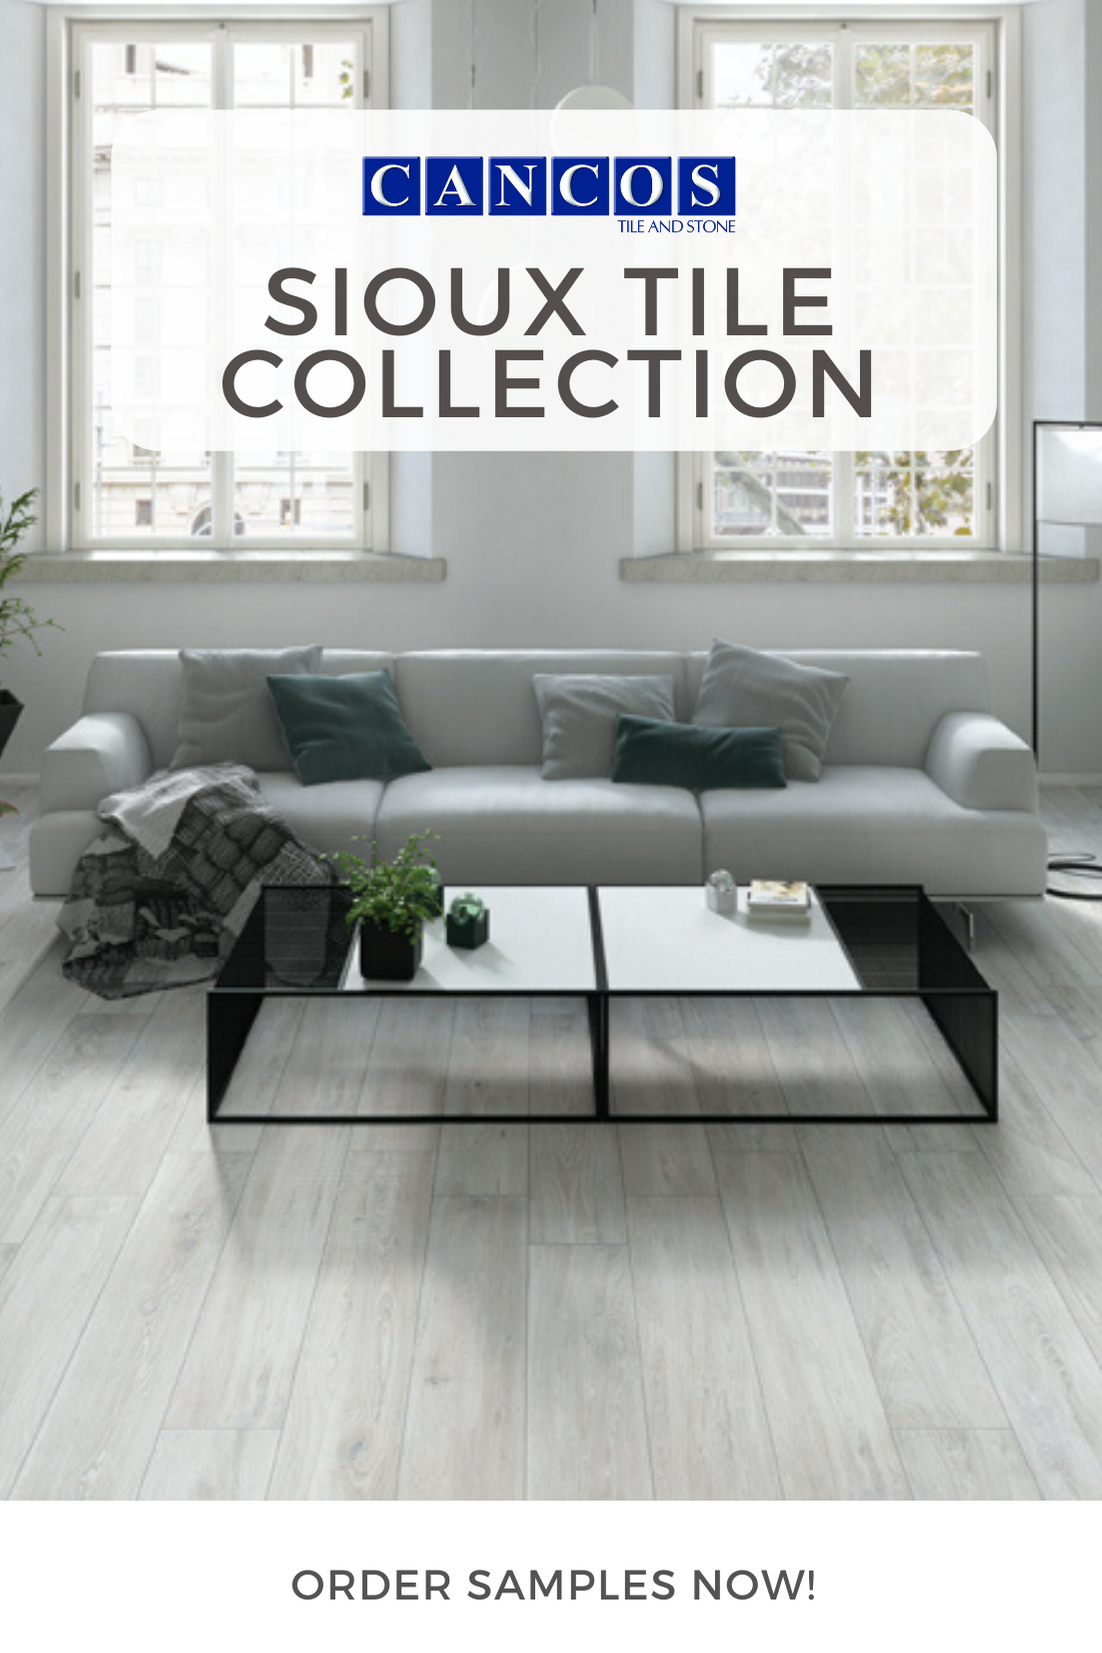 White And Green Styled Living Room In Farmingville New York In 2020 Living Room Tiles Living Room White Living Room #white #tiles #for #living #room